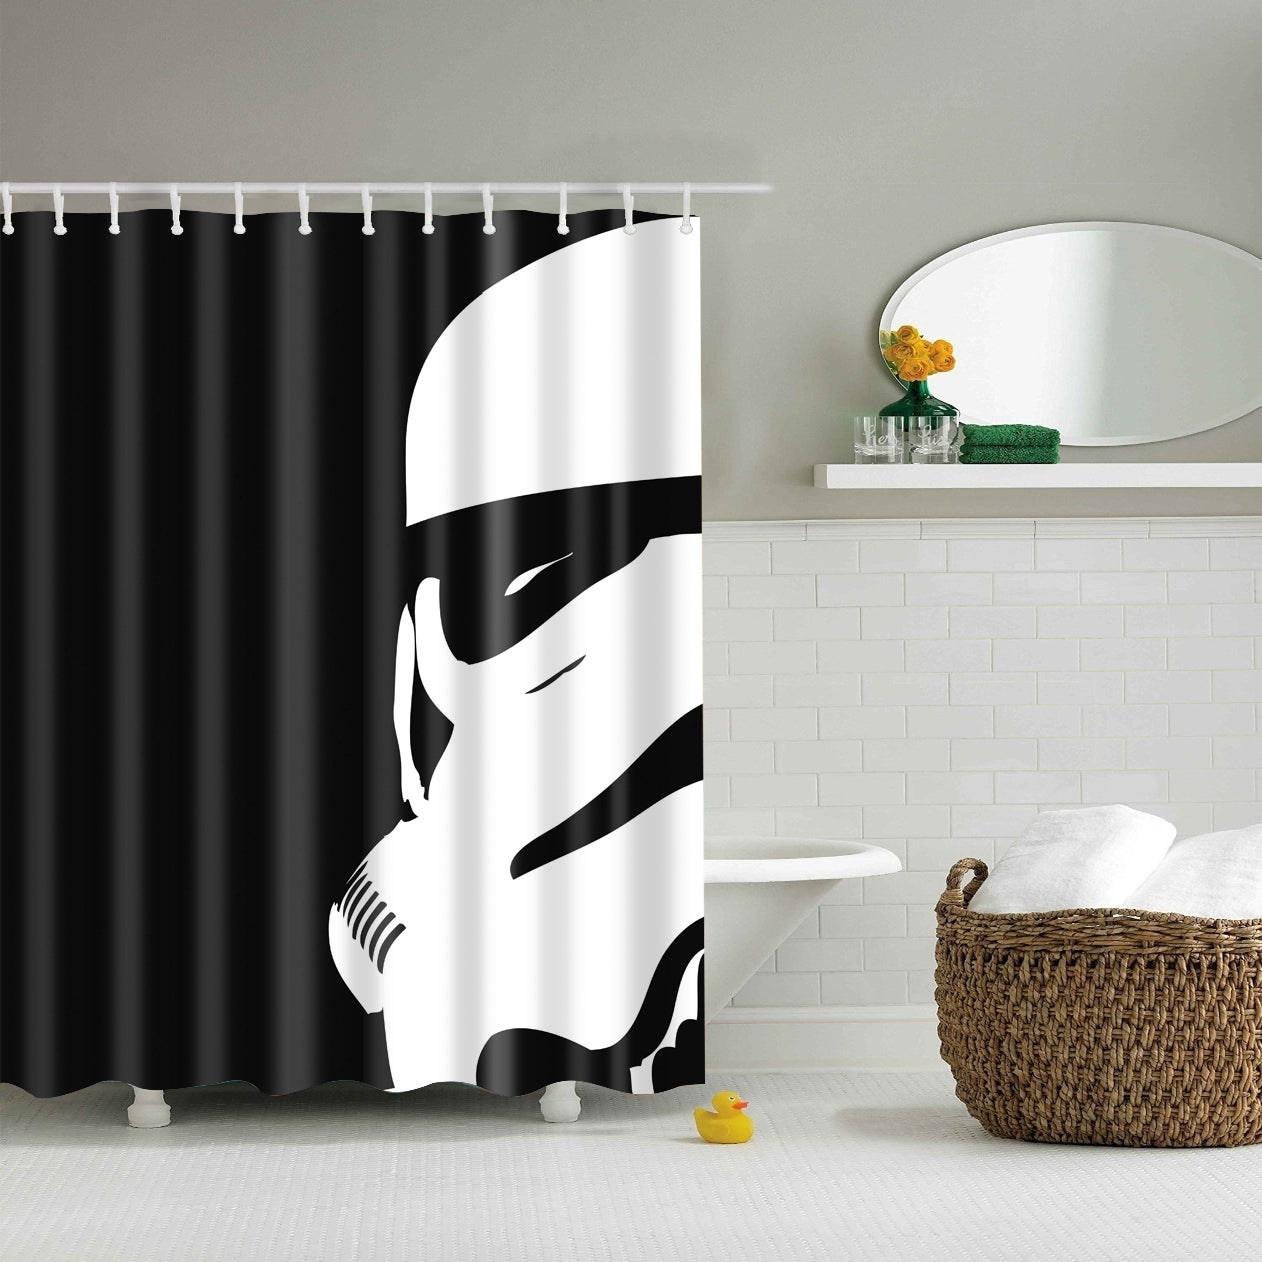 Star Wars Poster Storm Trooper Shower Curtain | GoJeek